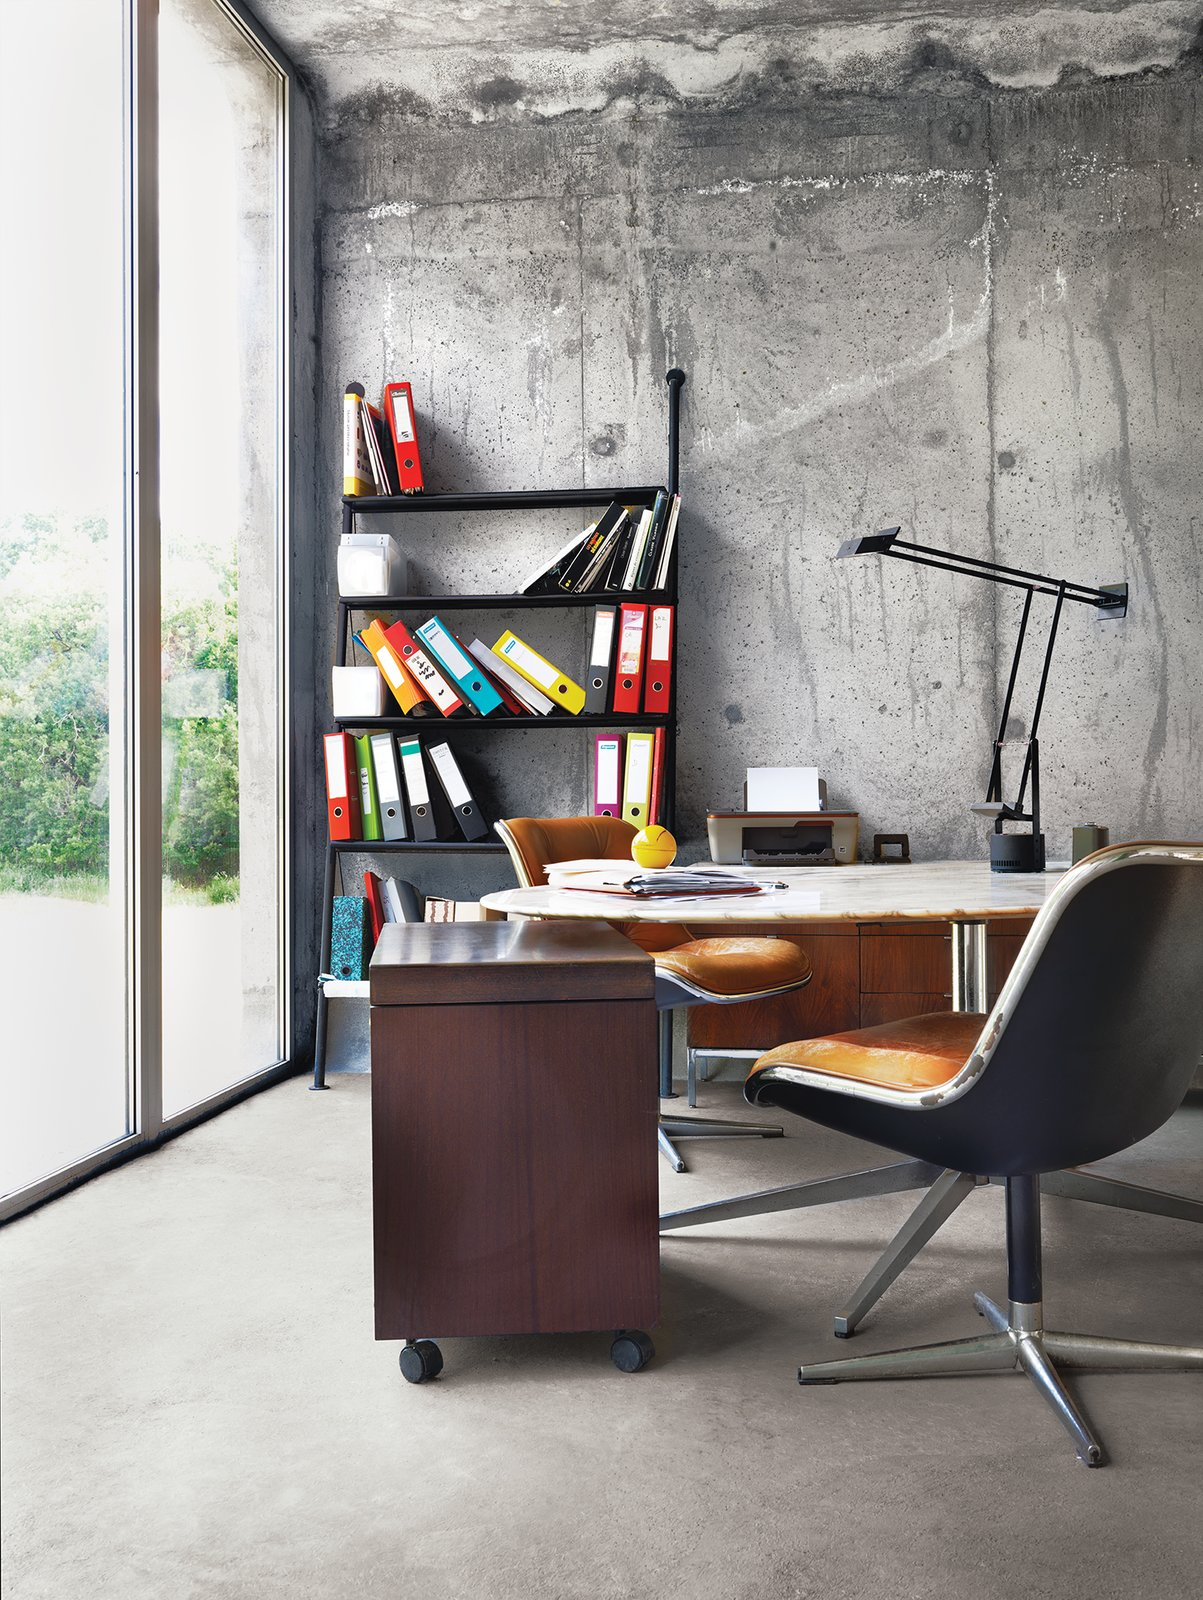 Outfitted with Pollock desk chairs and a marble-topped conference table by Knoll, the office in Monory's French farmhouse pays homage to international design. The Tizio task lamp is by Richard Sapper for Artemide, and the leaning John Ild bookshelf was designed by Philippe Starck for Disform in 1977.  Photo 9 of 12 in Matali Crasset Renovates Monory Farmhouse